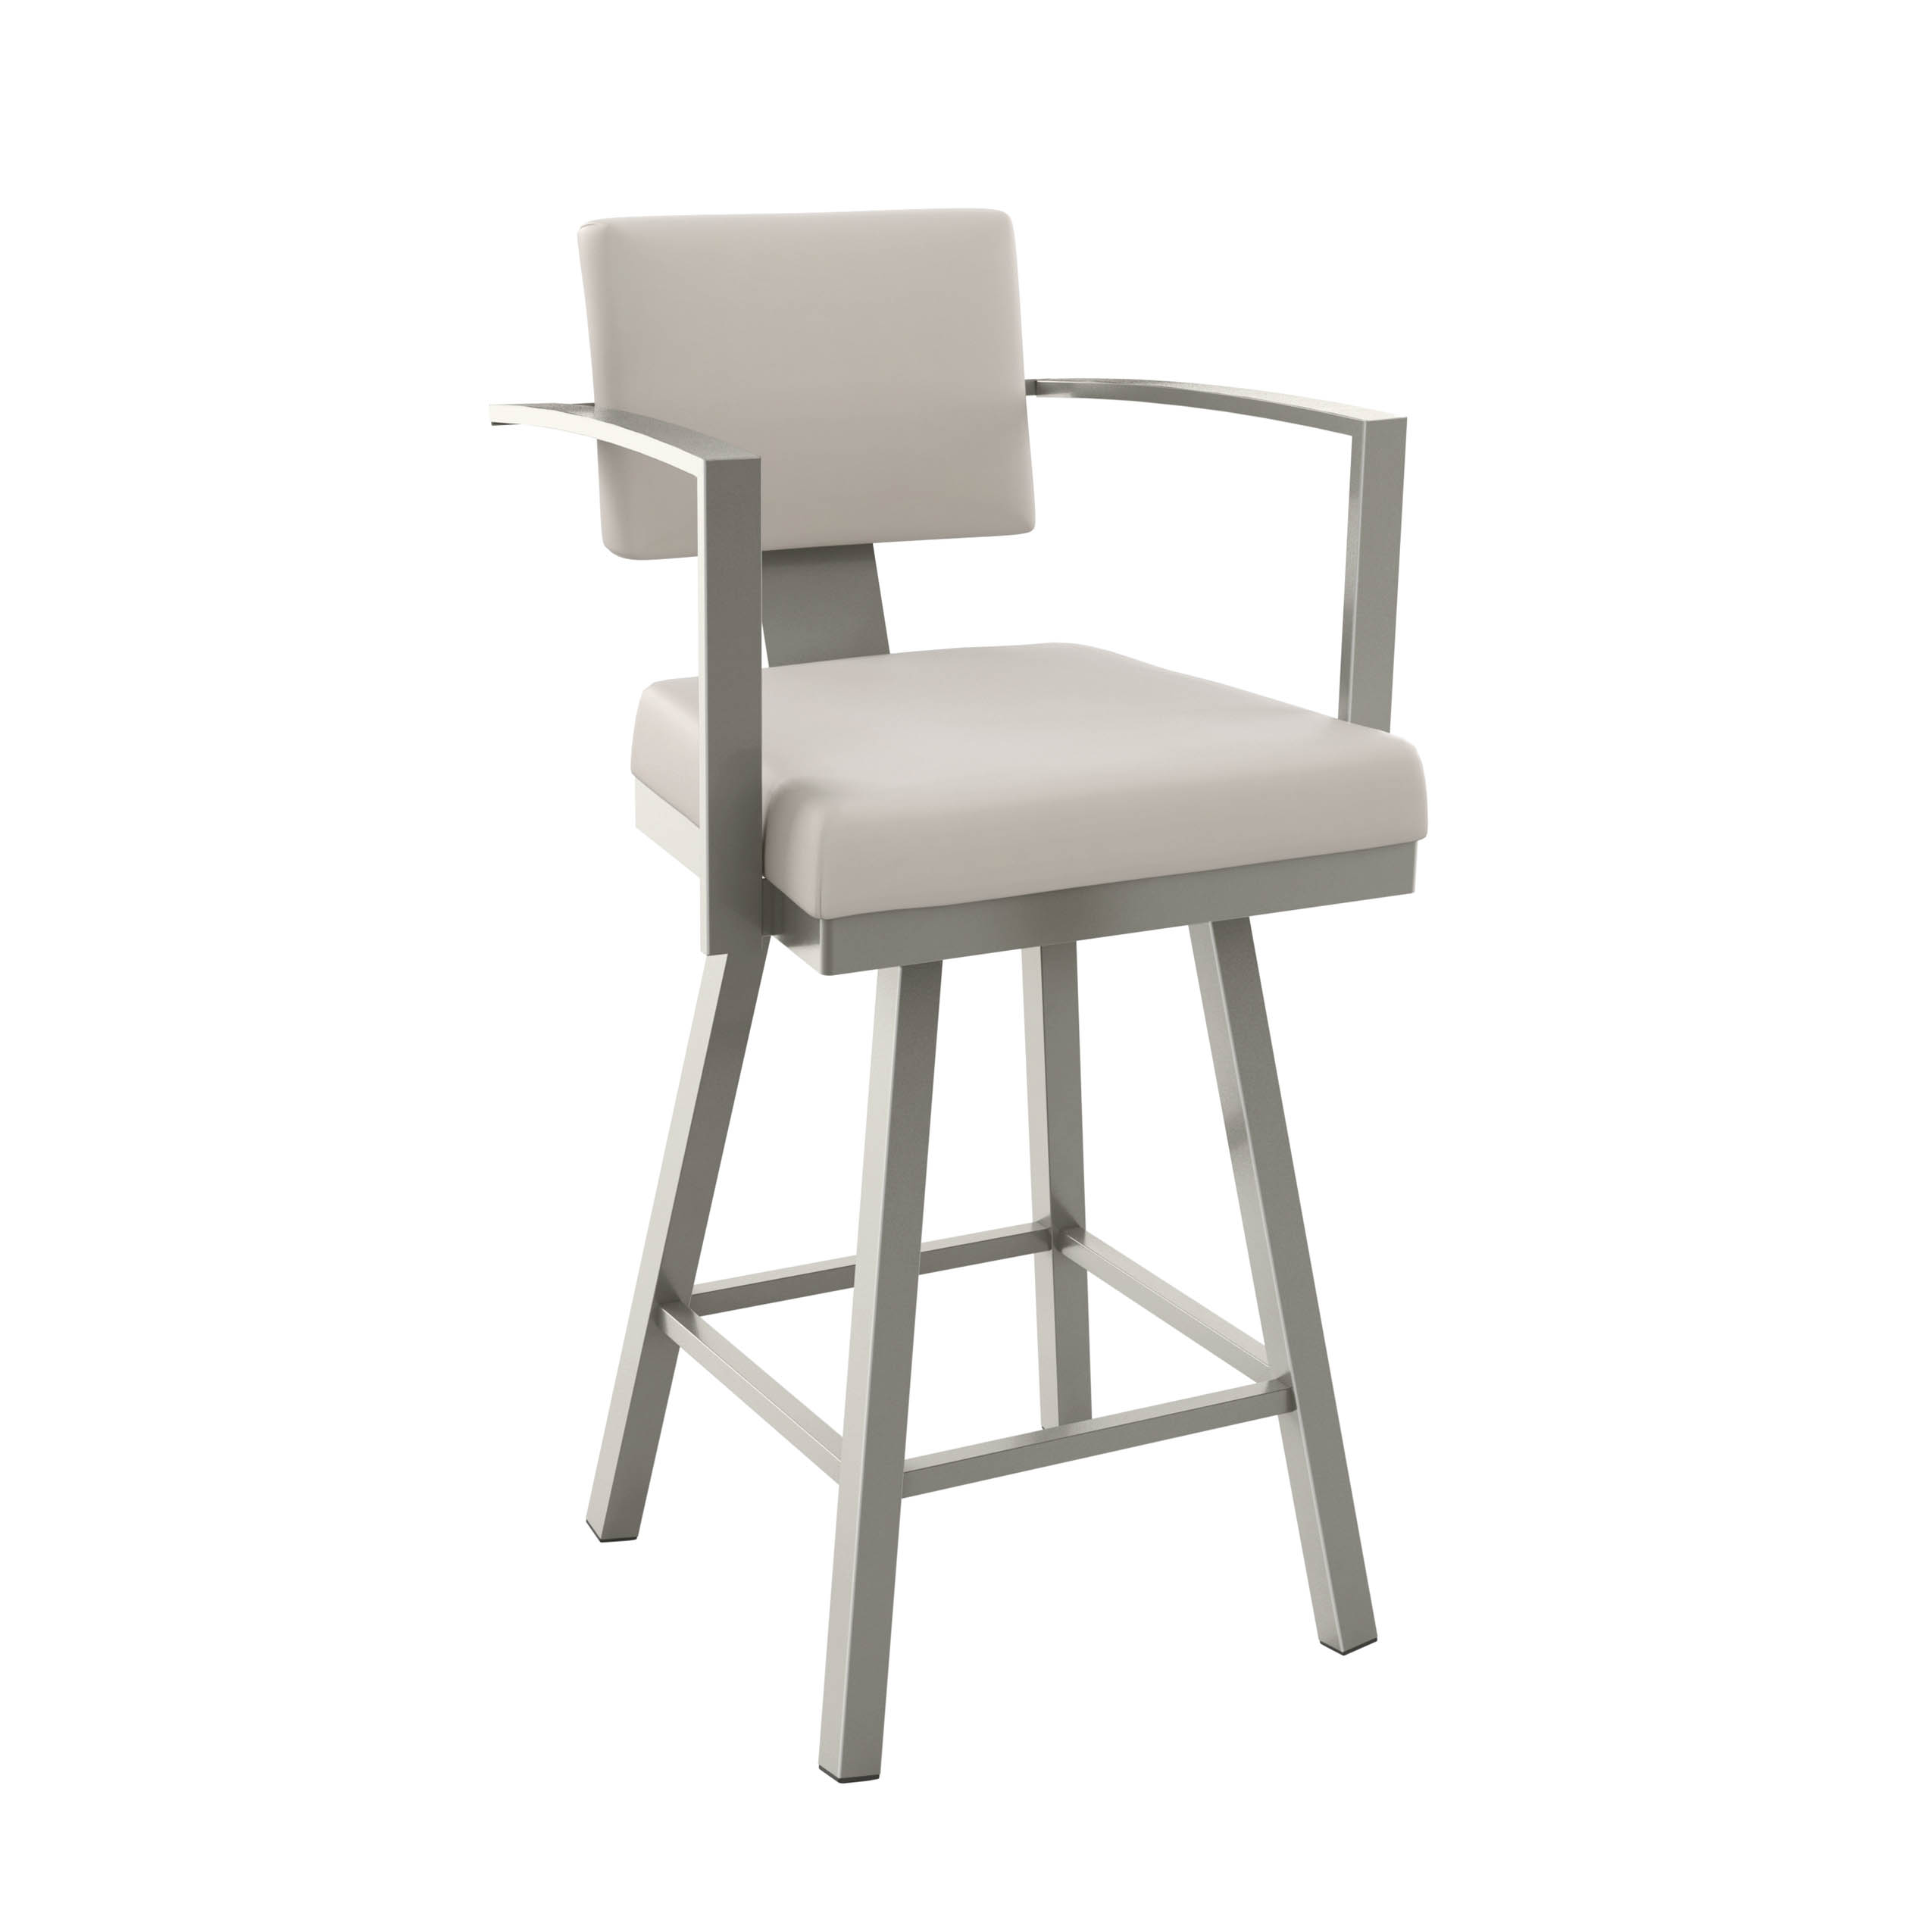 Counter Stools With Arms Part - 37: Hayneedle